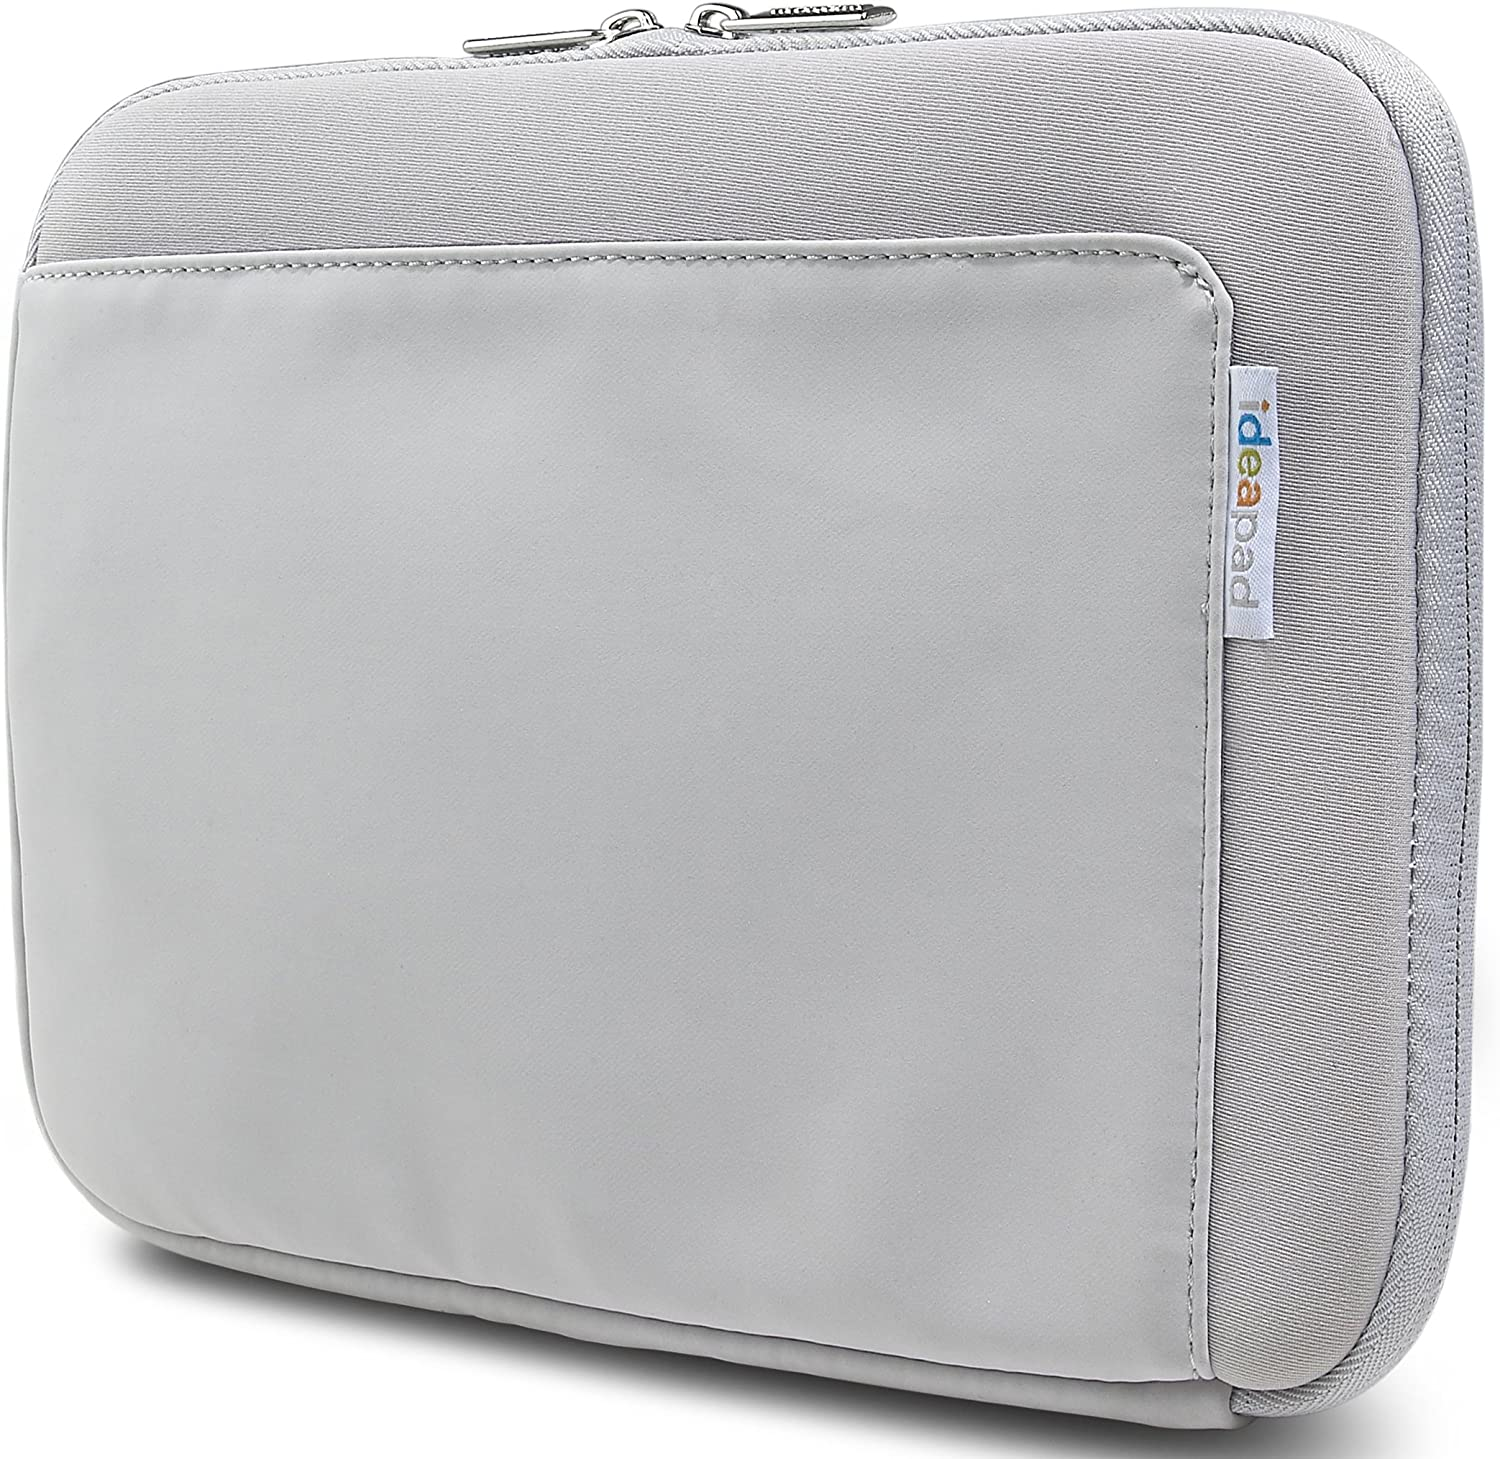 "Ideapad S10-2 10"" Sleeve Gray"